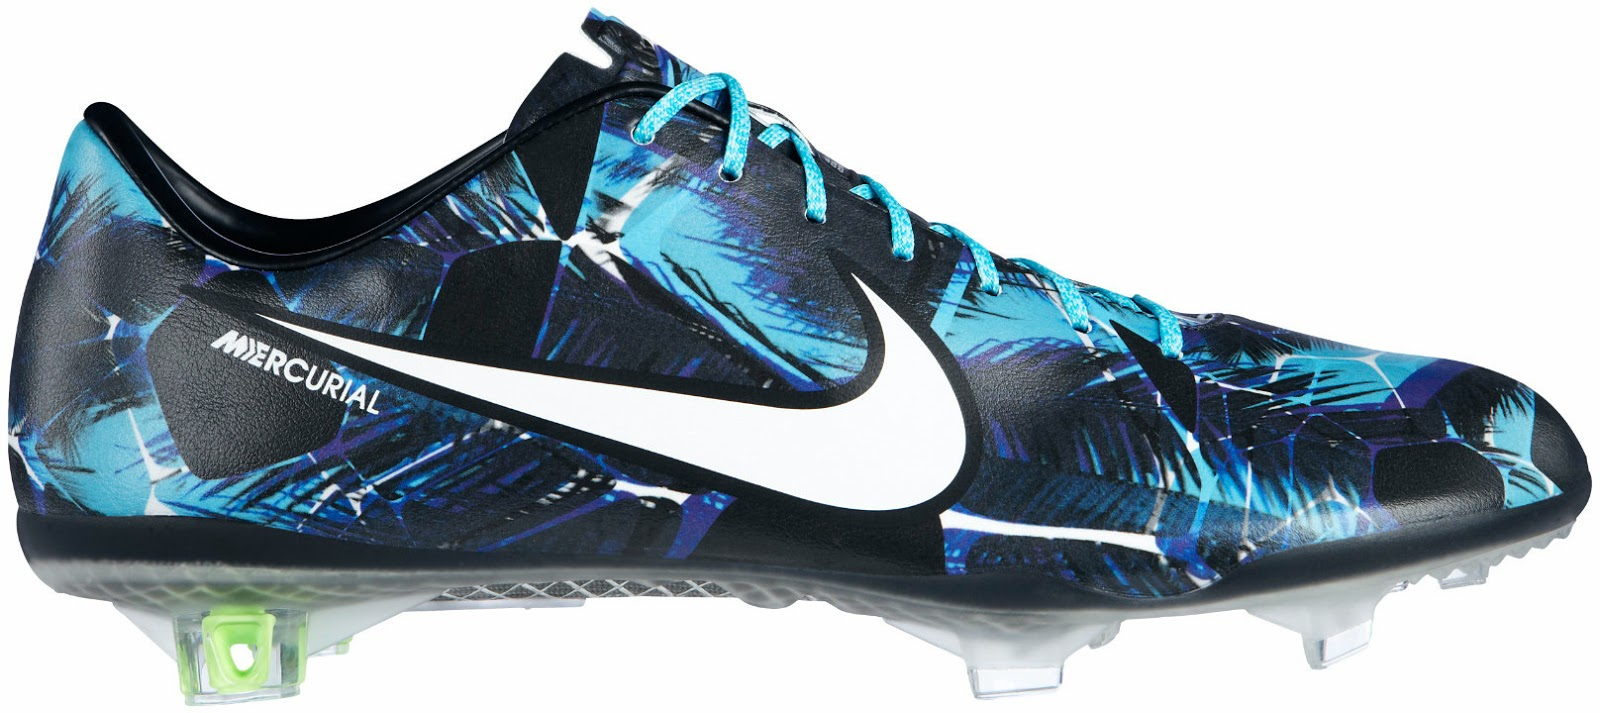 nike mercurial vapor ix tropical pack released footy. Black Bedroom Furniture Sets. Home Design Ideas